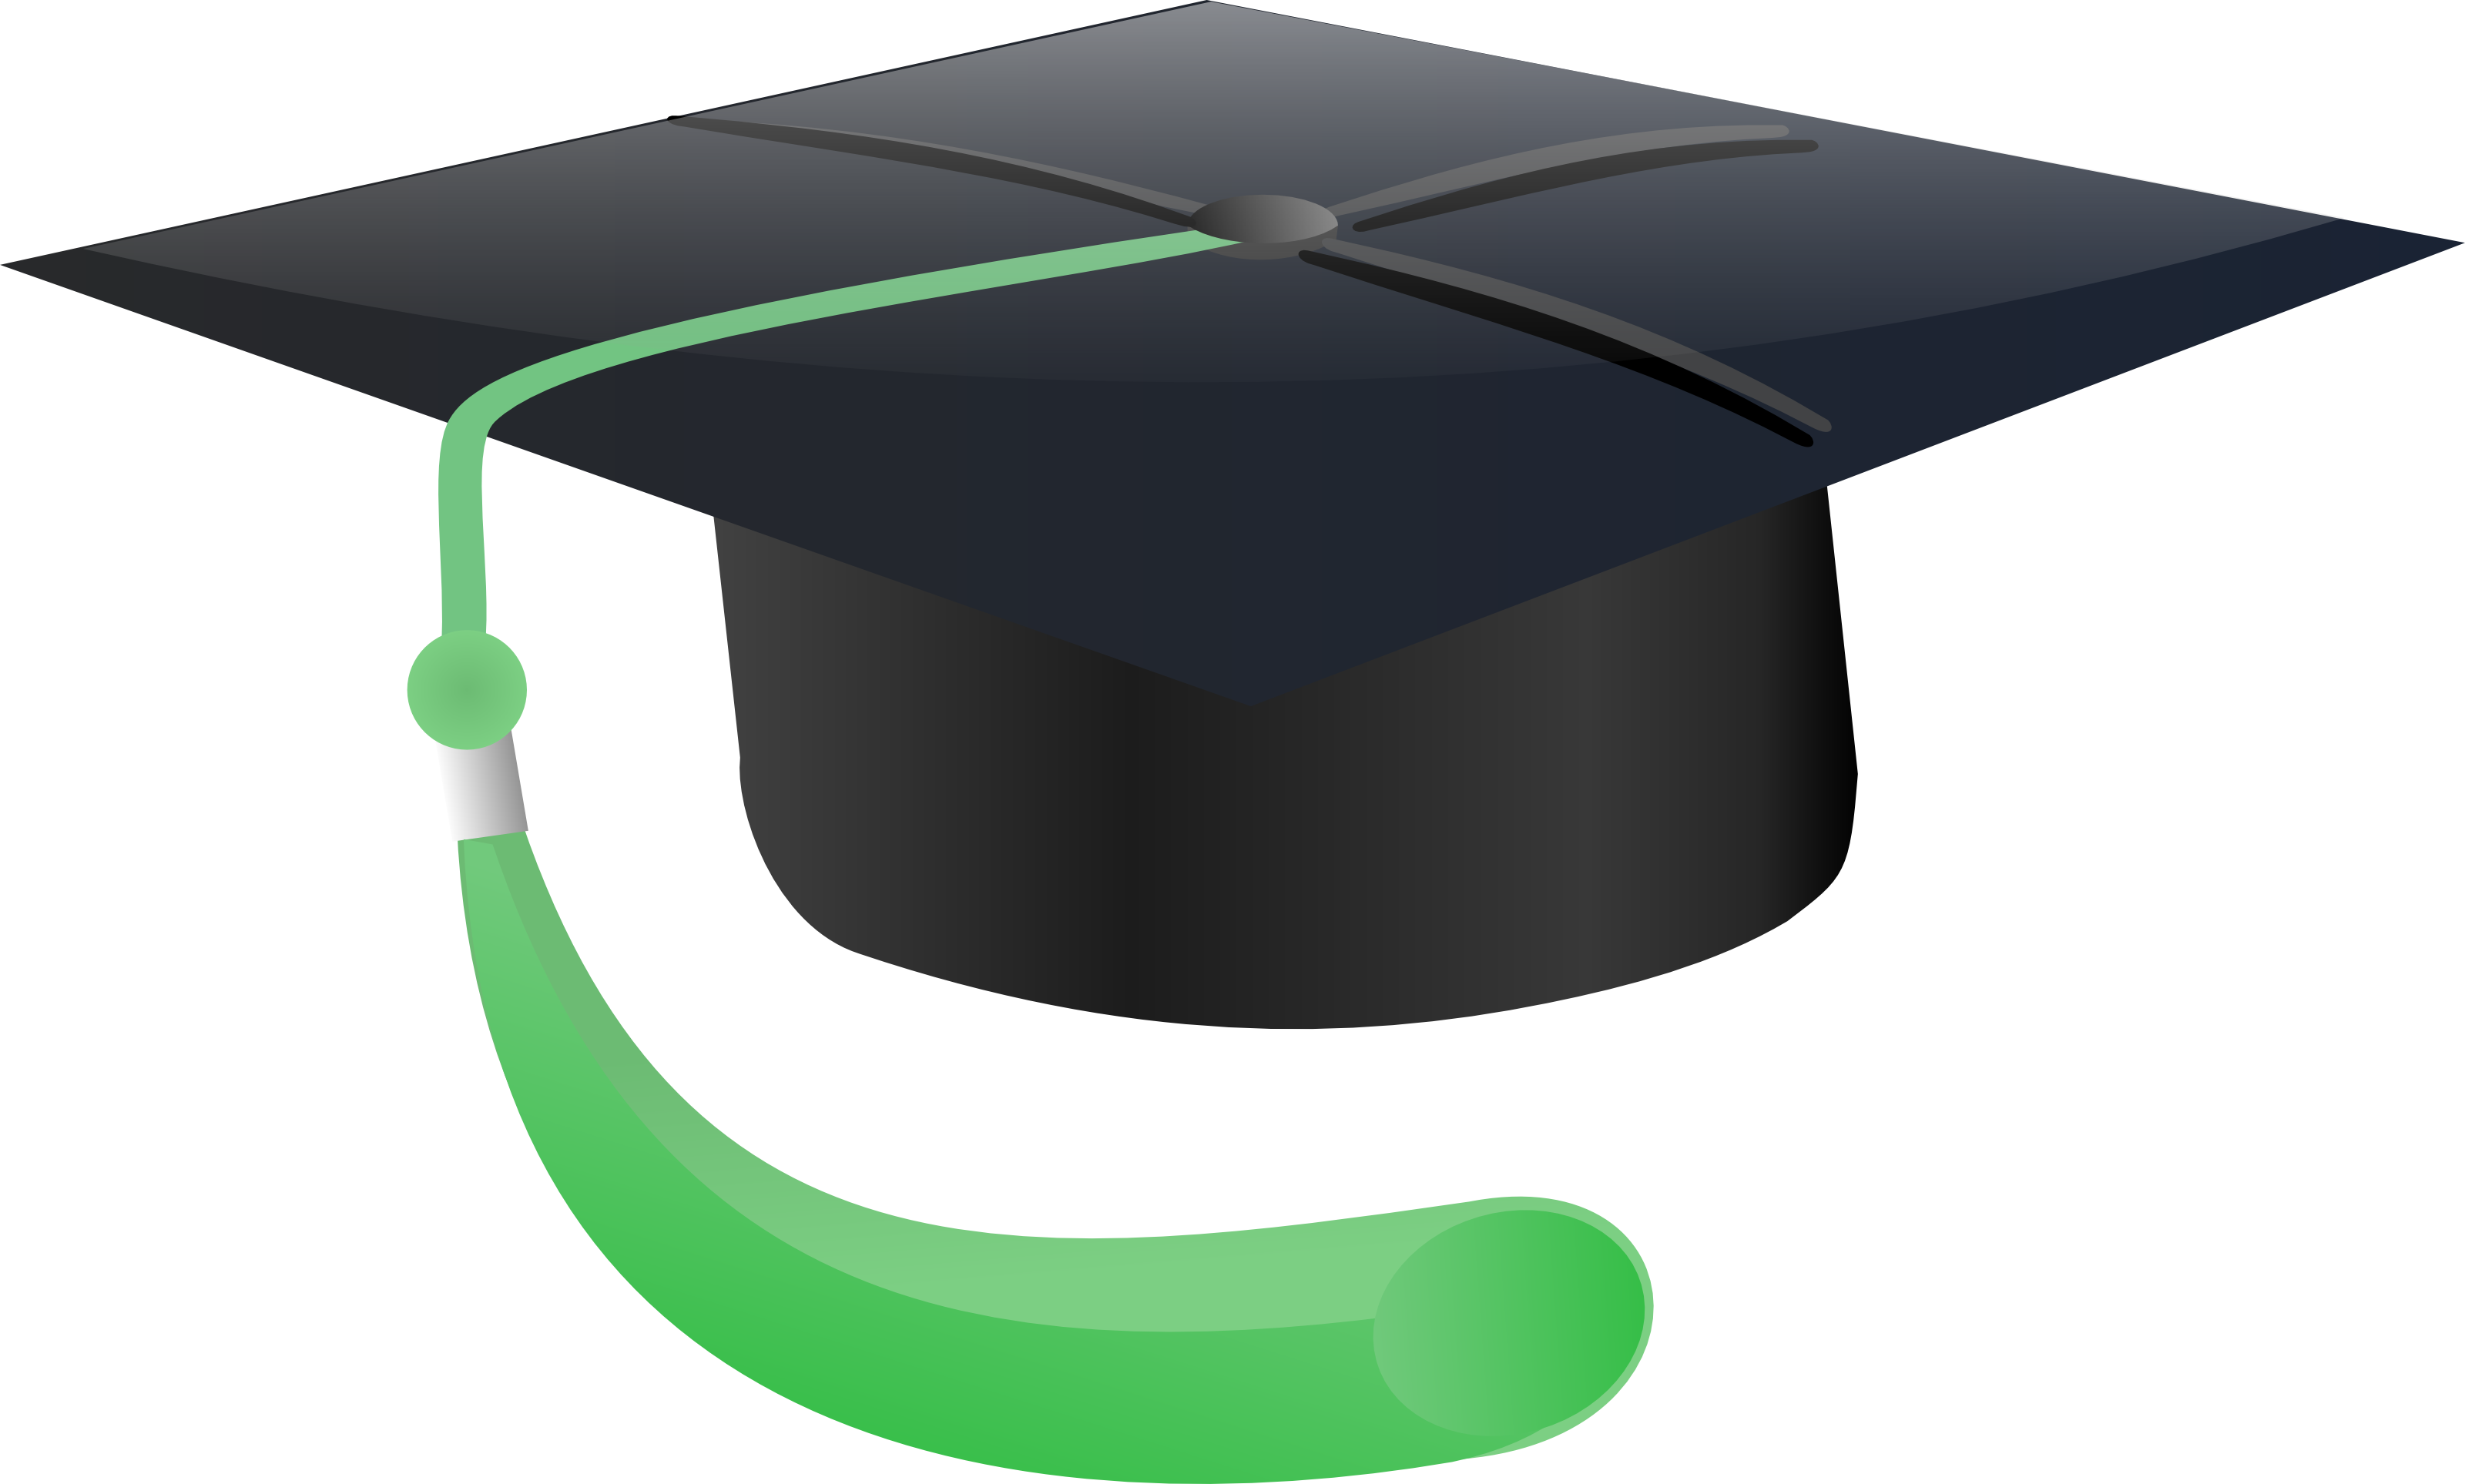 Free Graduation Cap With Green Tassle Clipart Illustration